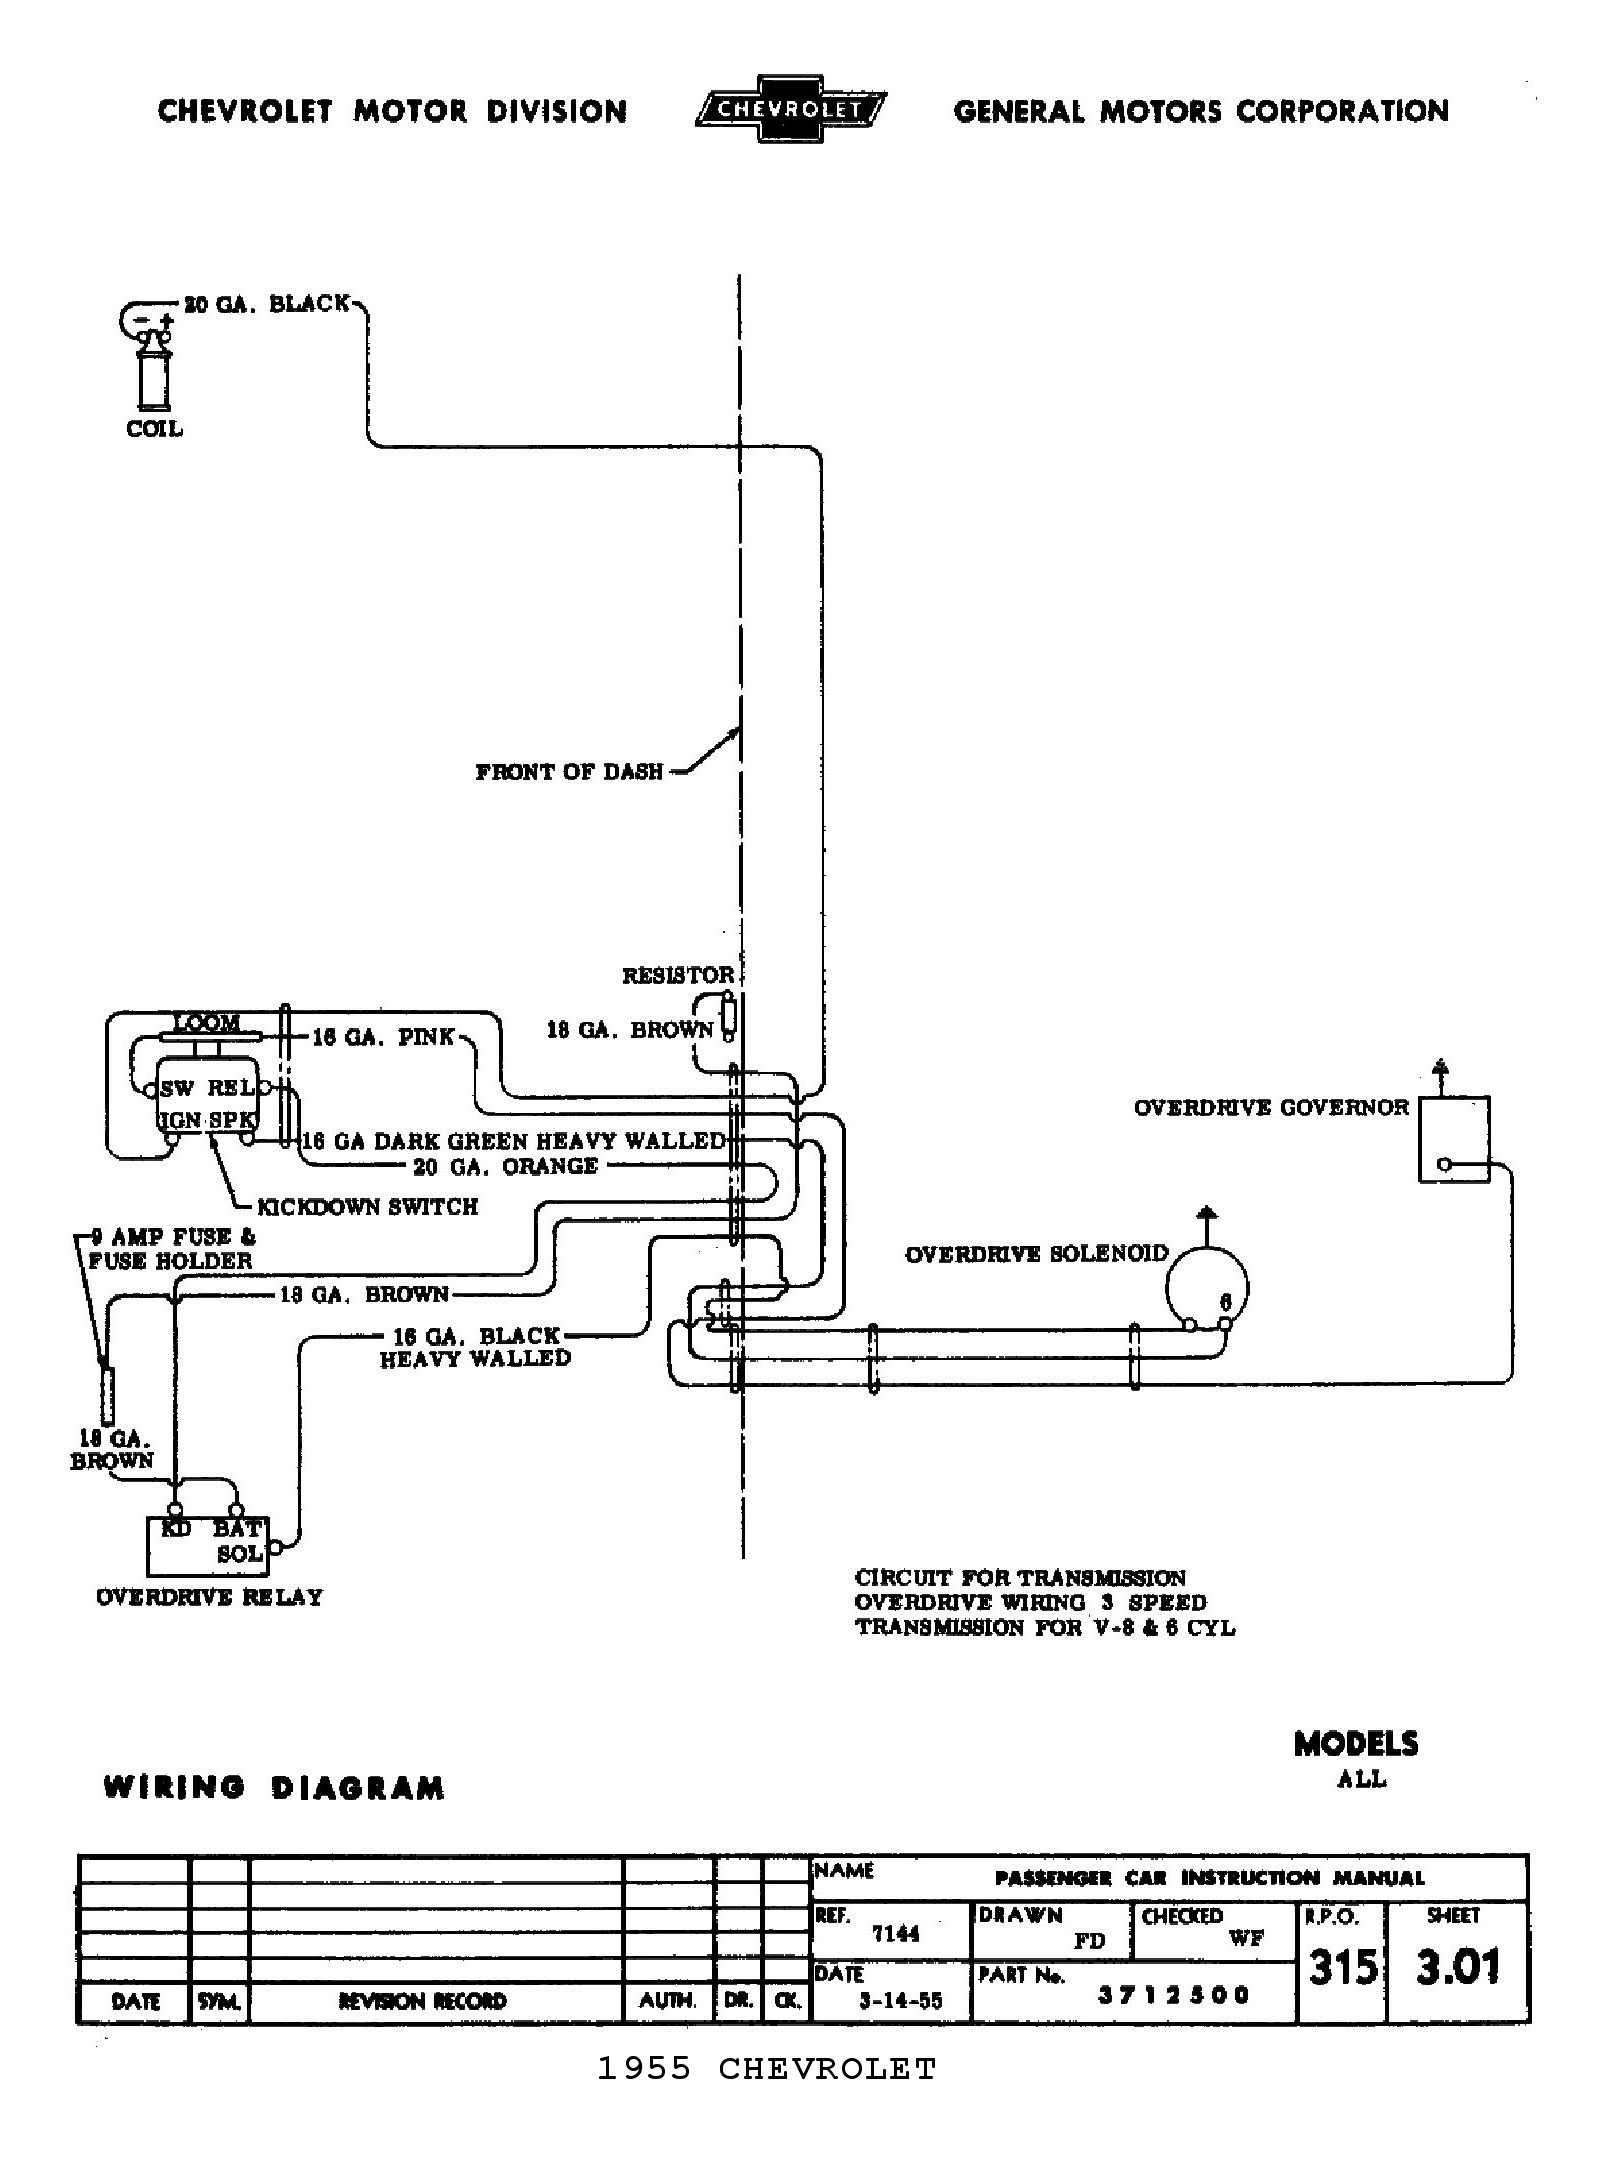 Chevy Wiring Diagrams 1986 Transmission Diagram 1955 5 Speed Overdrive Circuit